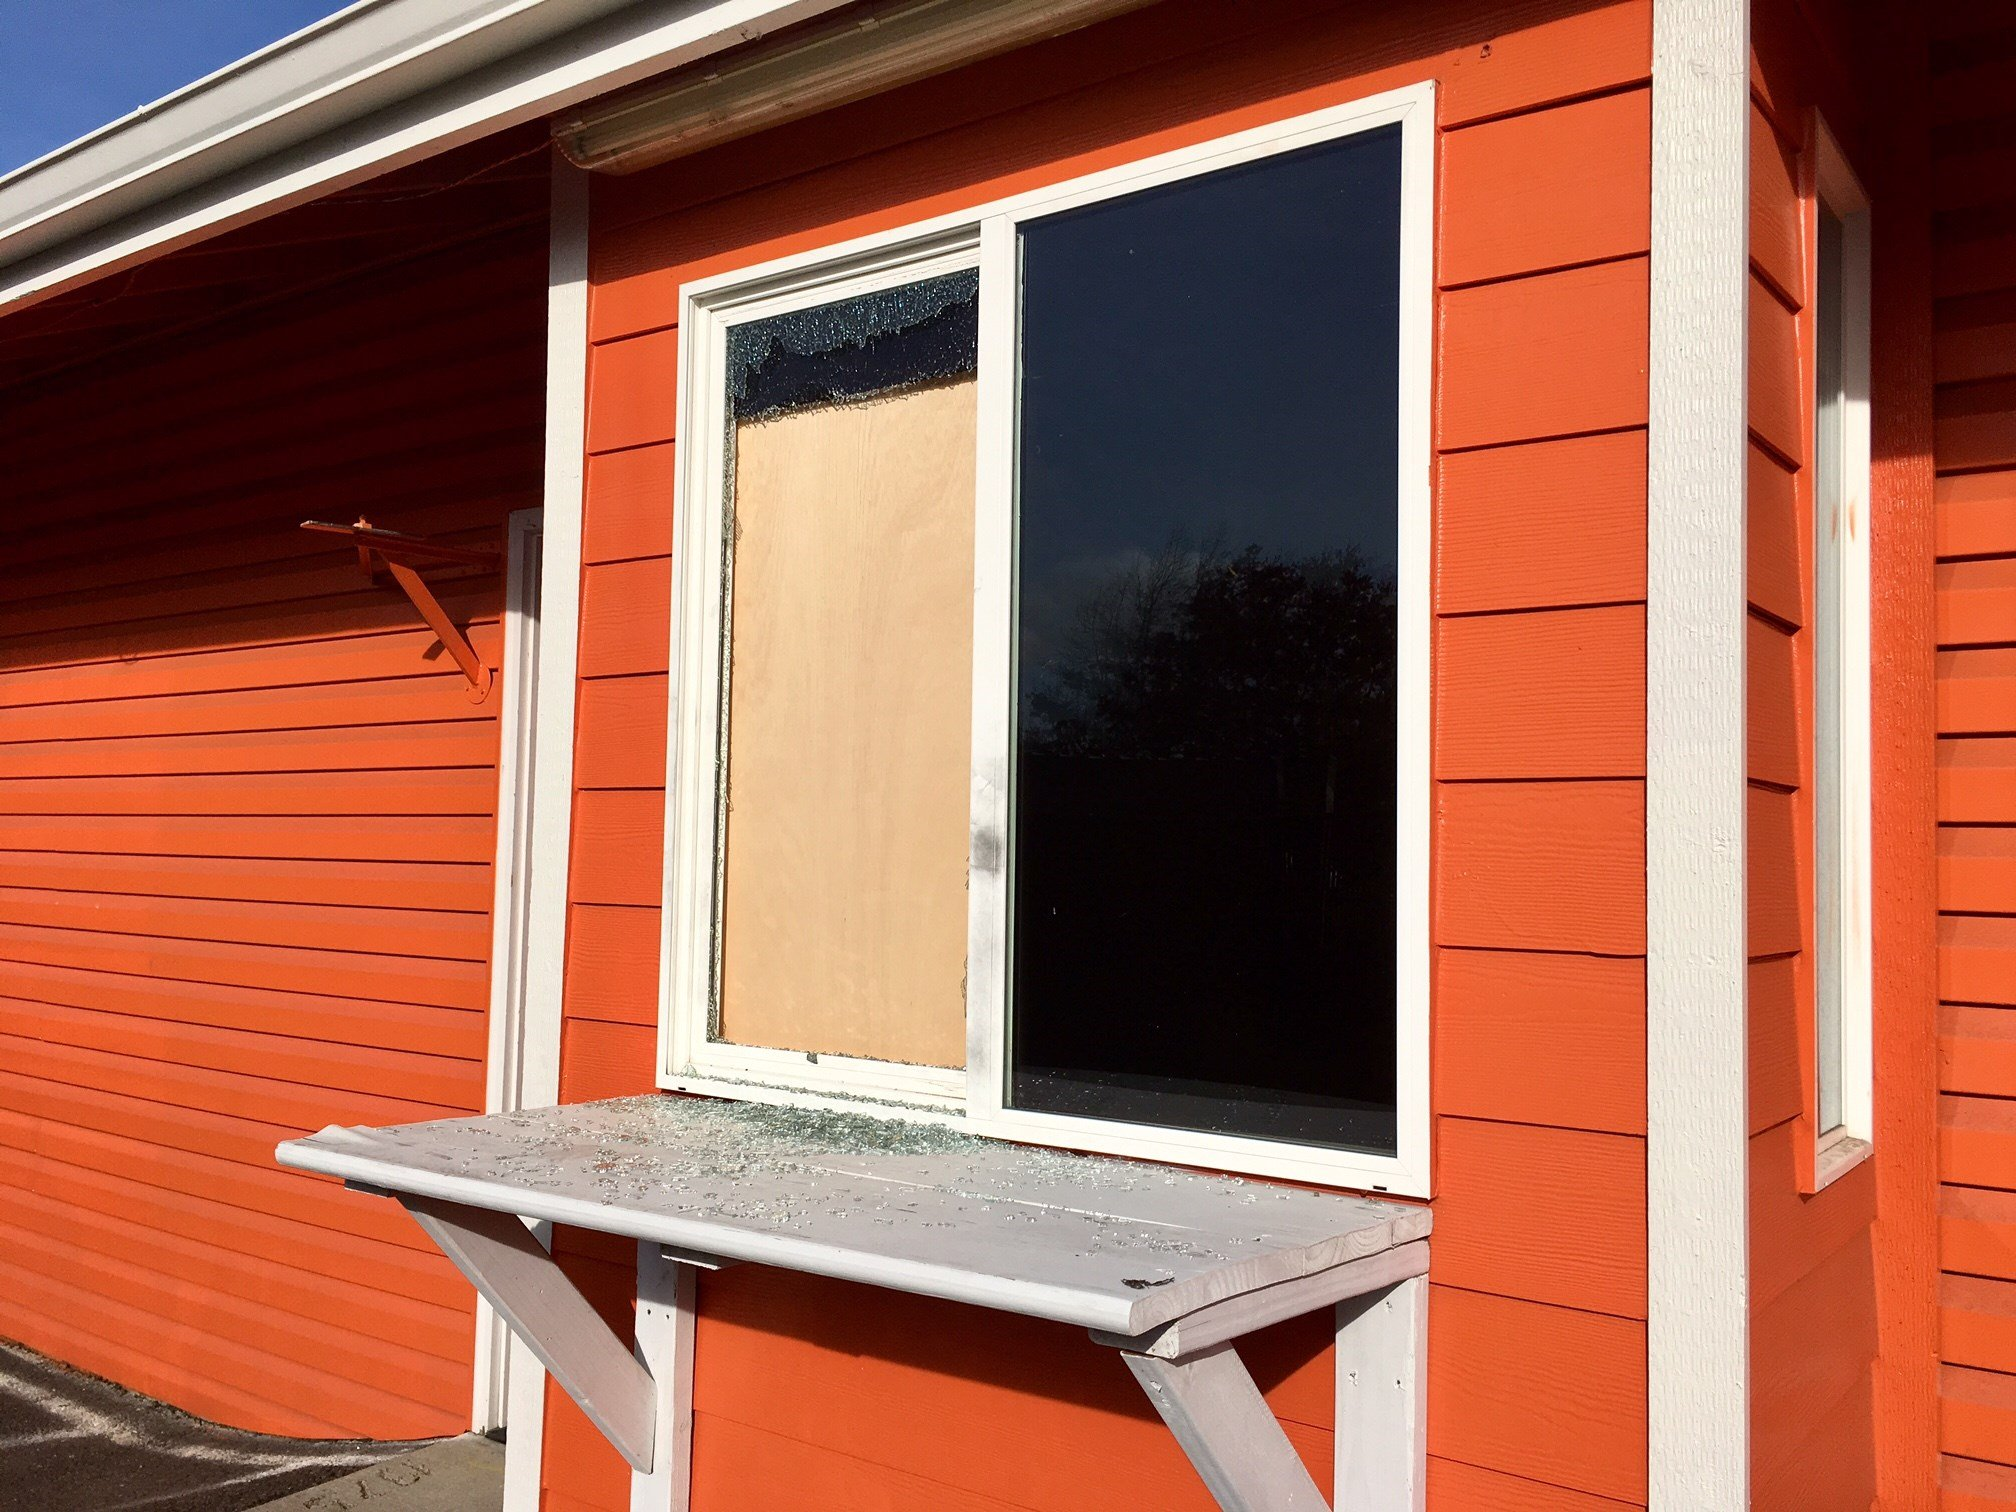 The boarded-up drive-through window. (KPTV)